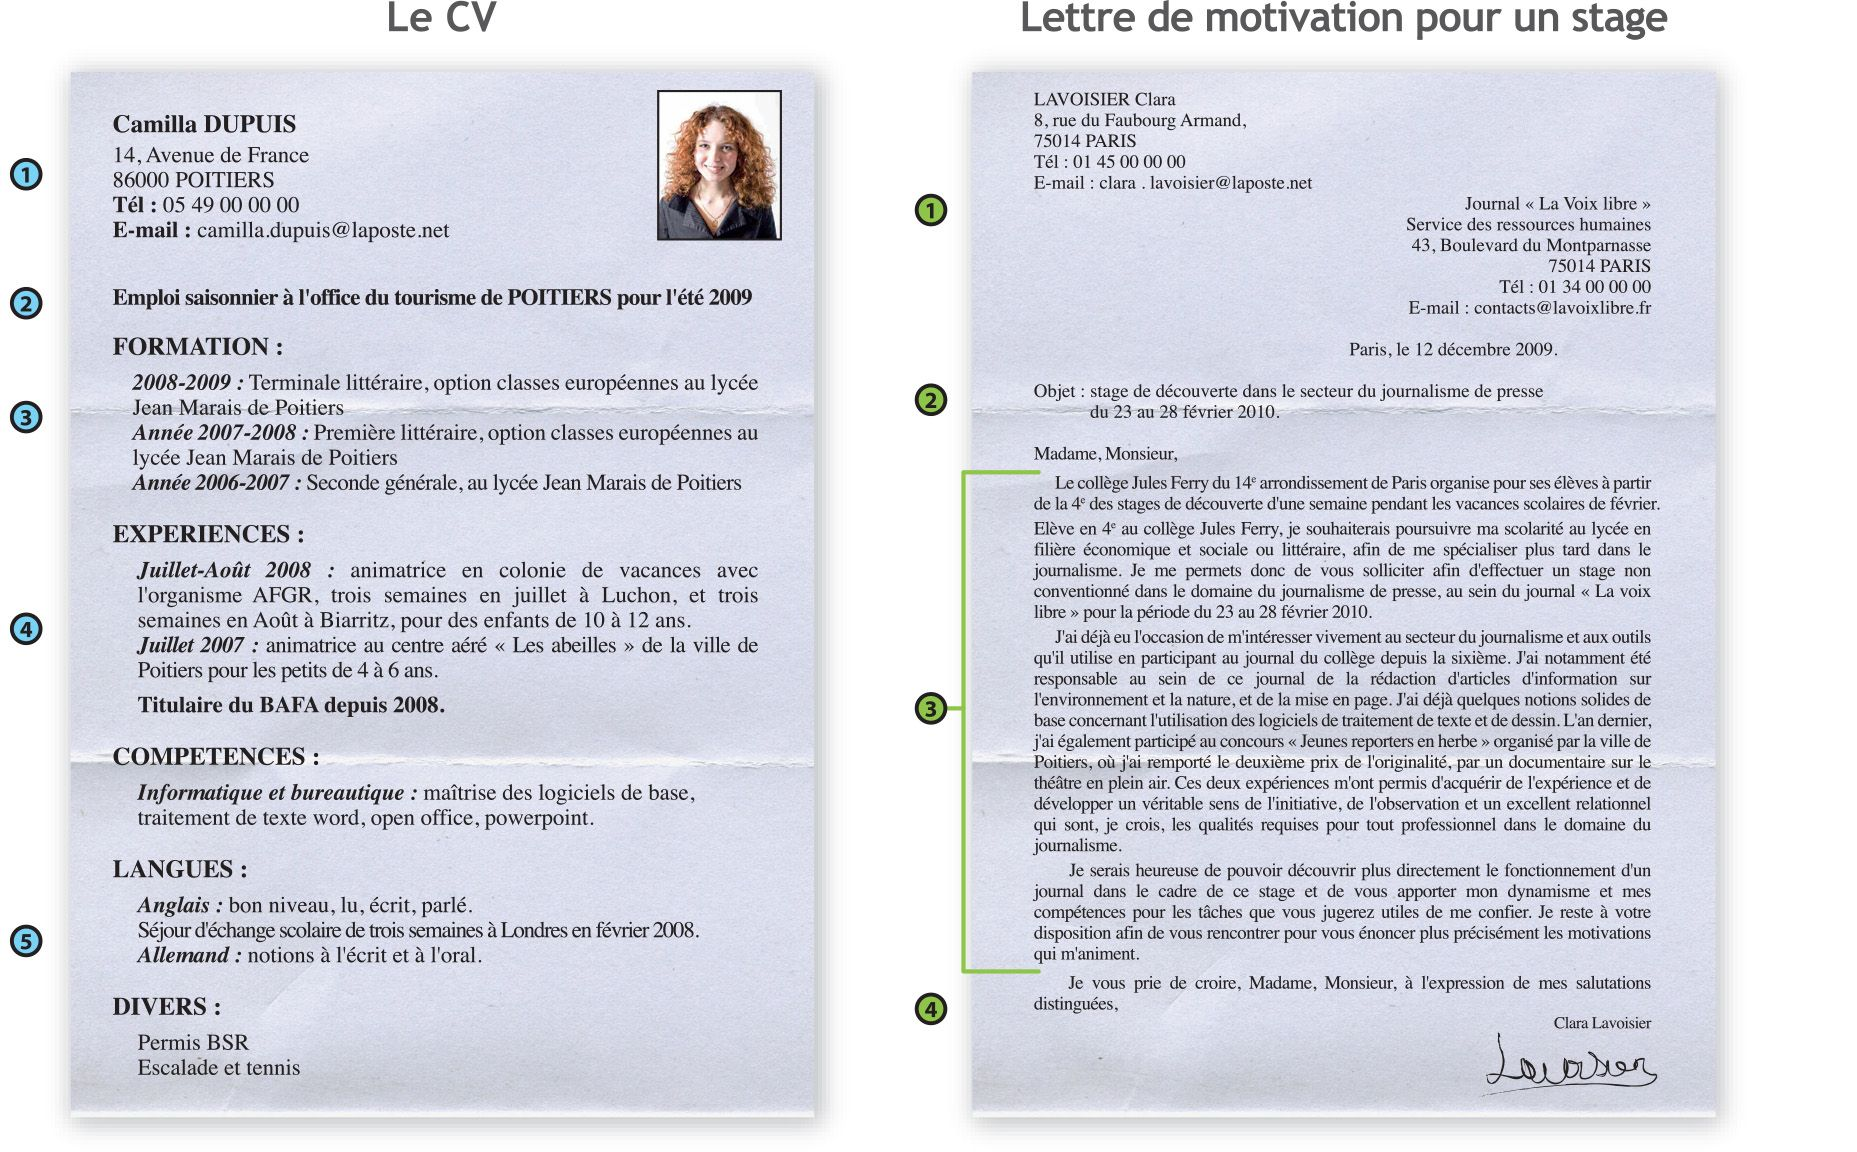 image de cv et lettre de motivation